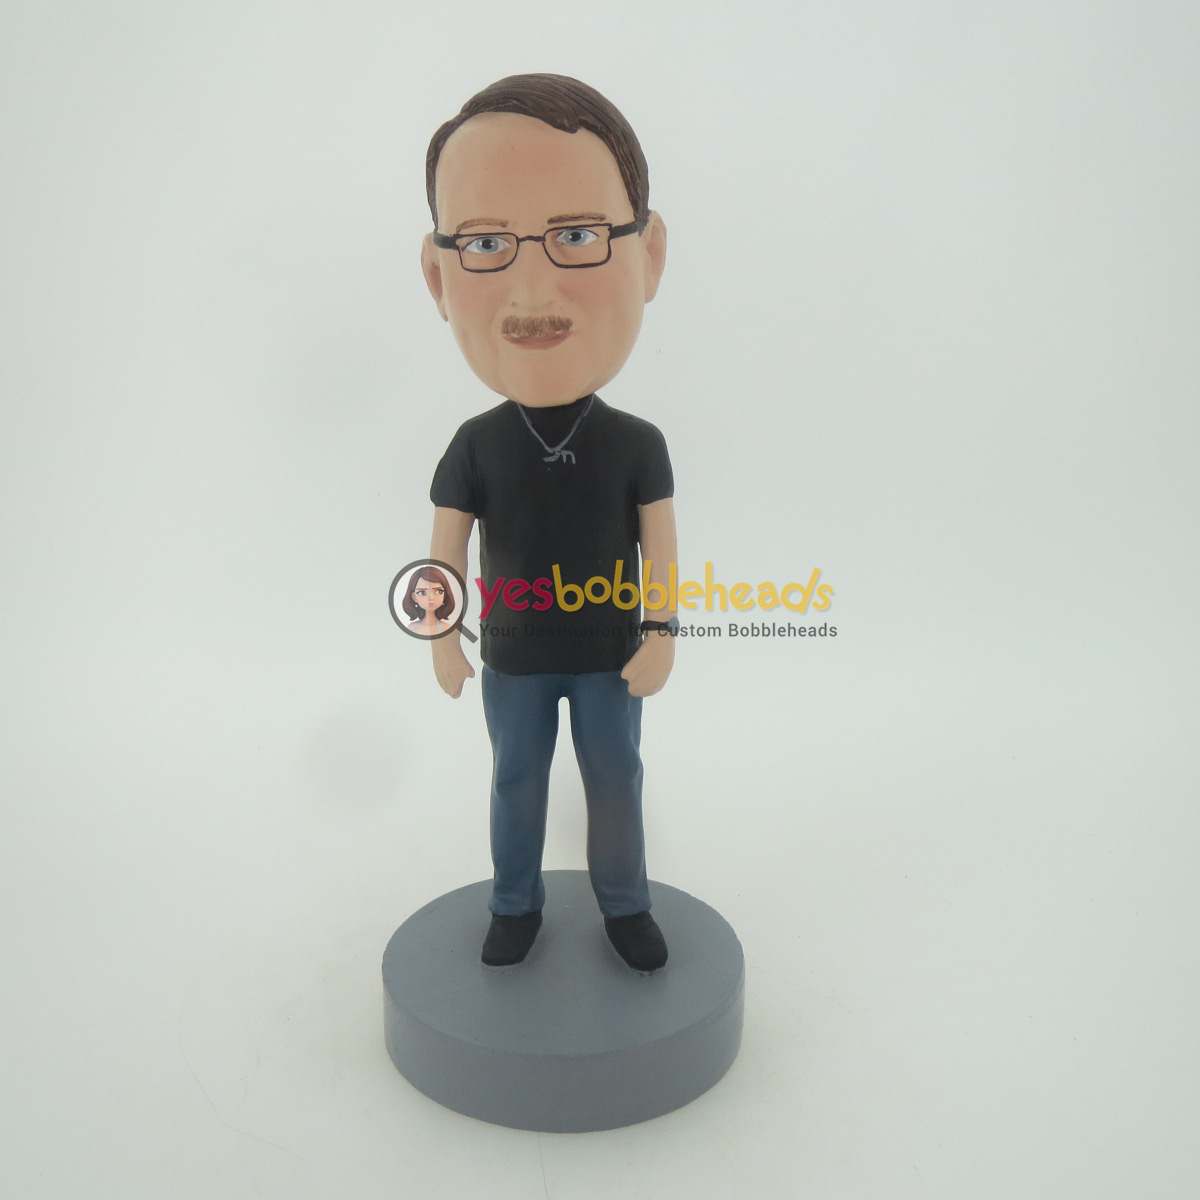 Picture of Custom Bobblehead Doll: Casual Man In Black Wearing Glass